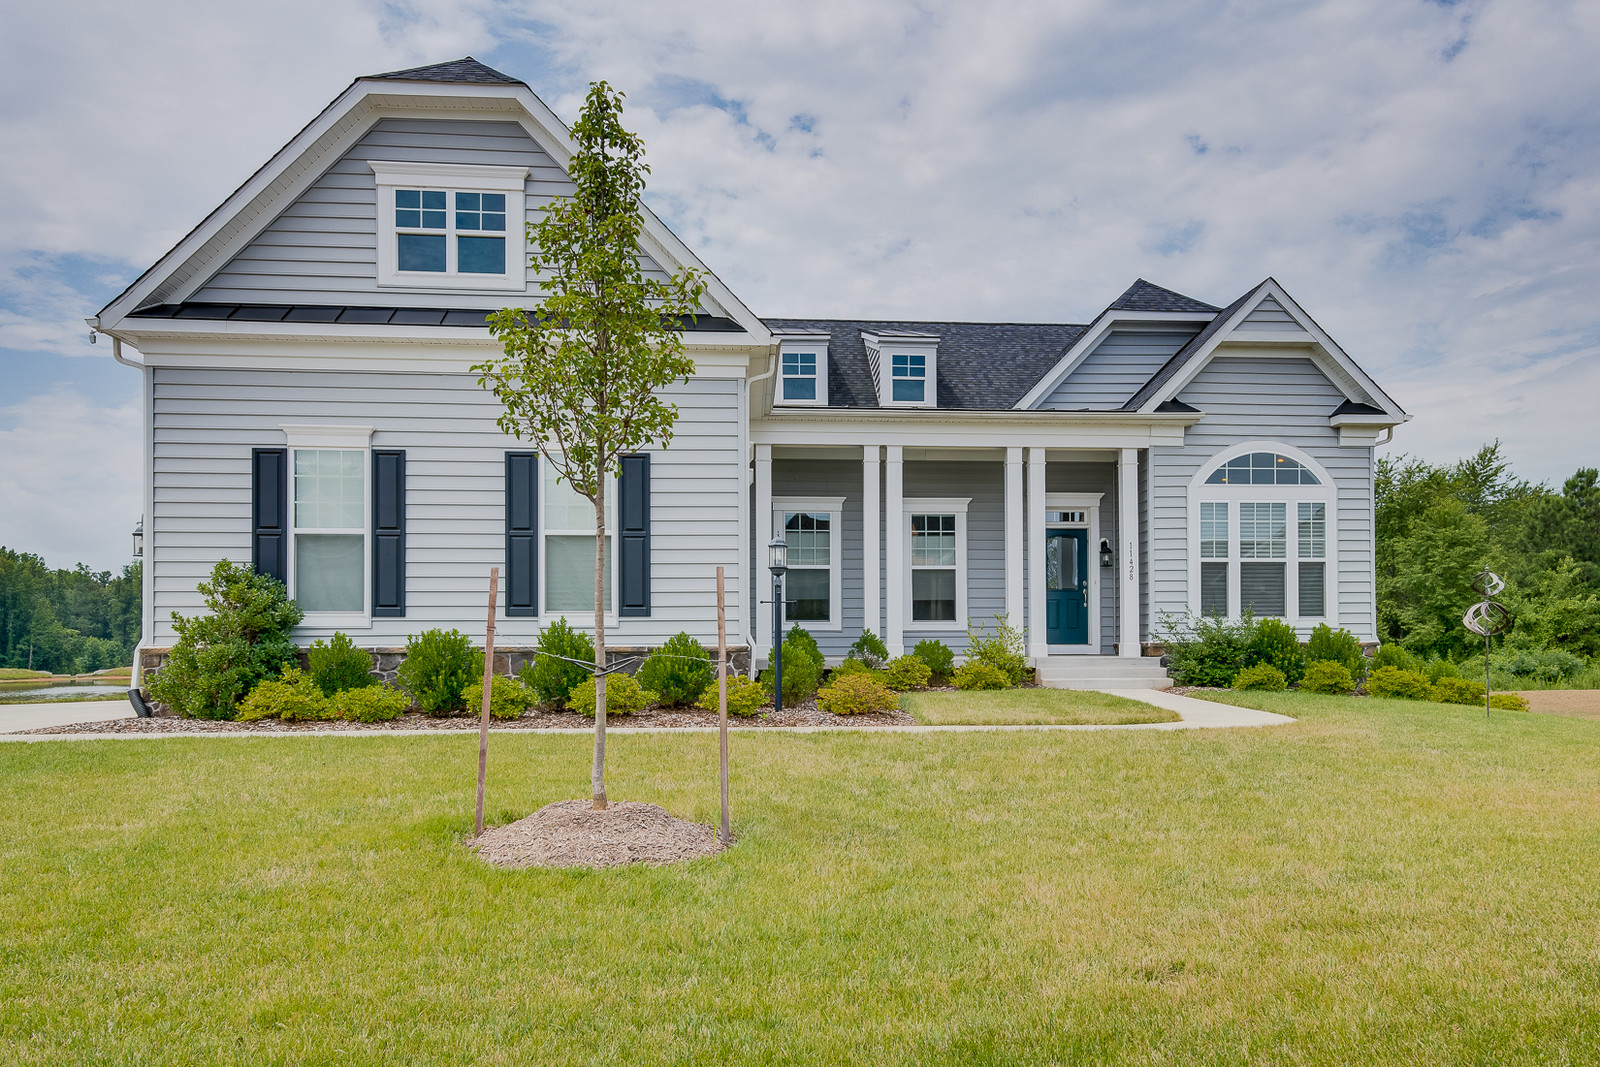 Home of the Week: Fawn Lake stunner